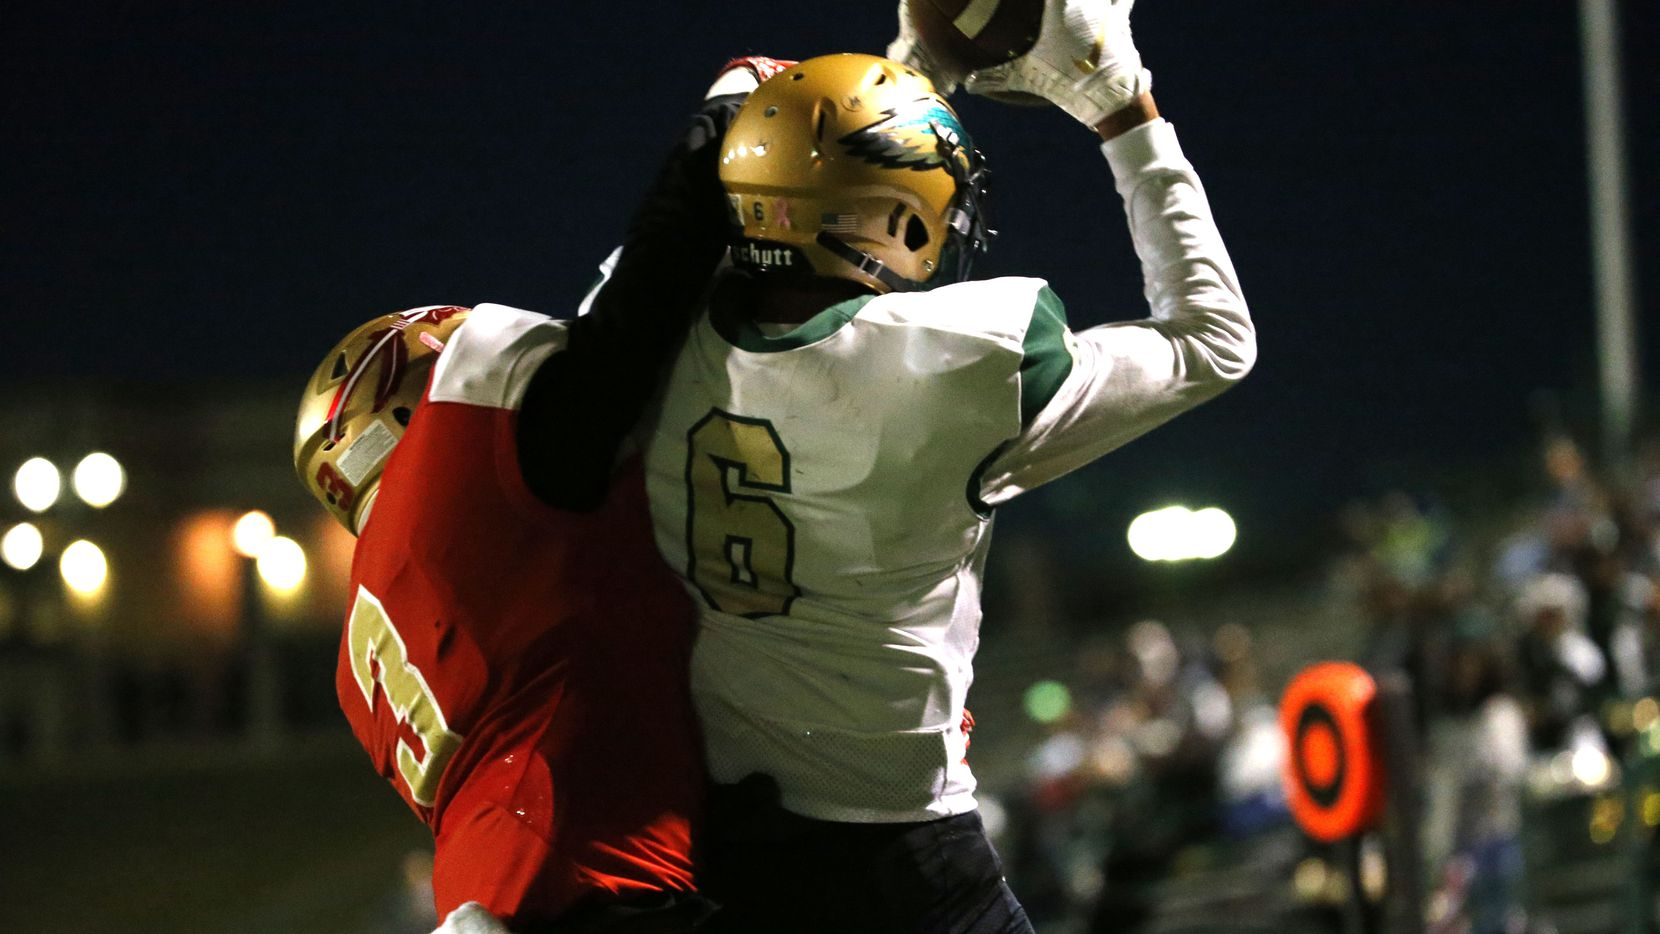 Desoto's Lawrence Arnold Jr. (6) catches a touchdown against South Grand Prairie's Earl Pugh (6) during the first half of their game at Gopher-Warrior Bowl in Grand Prairie on Nov. 1, 2018.